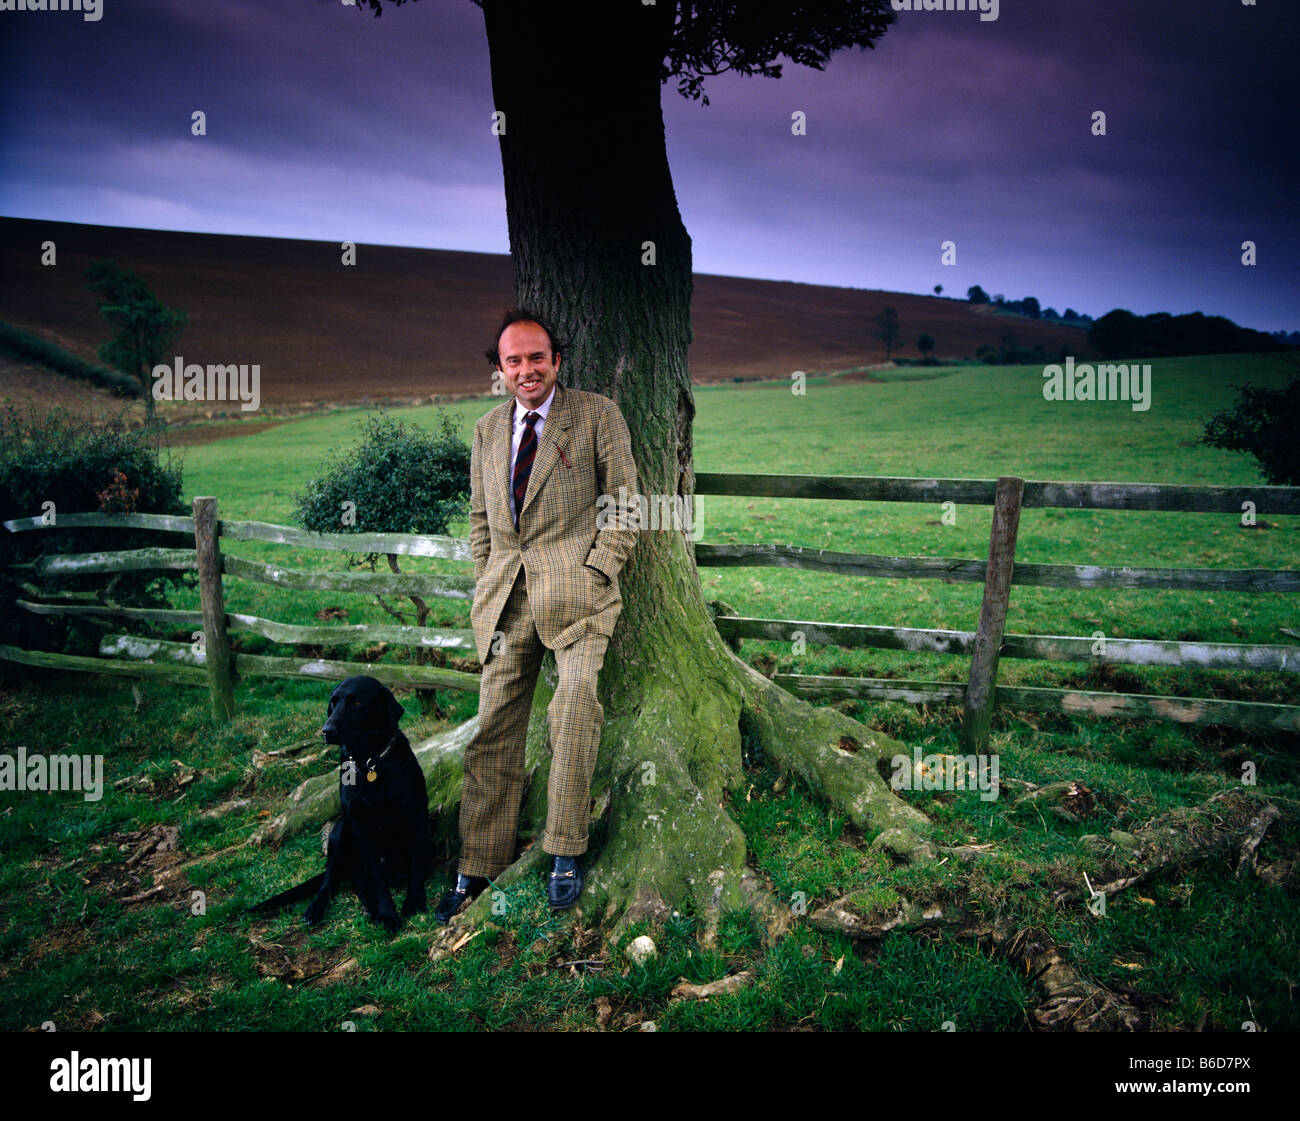 Lord Onlow in his grounds with his dog - Stock Image